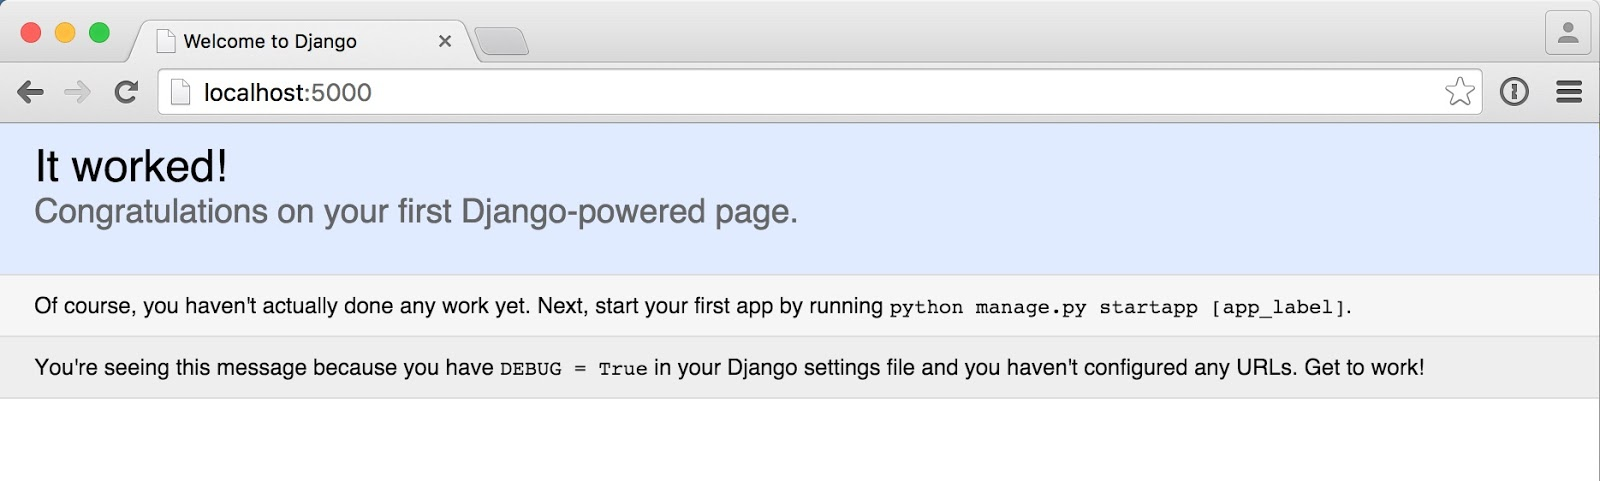 django-it-worked.jpg